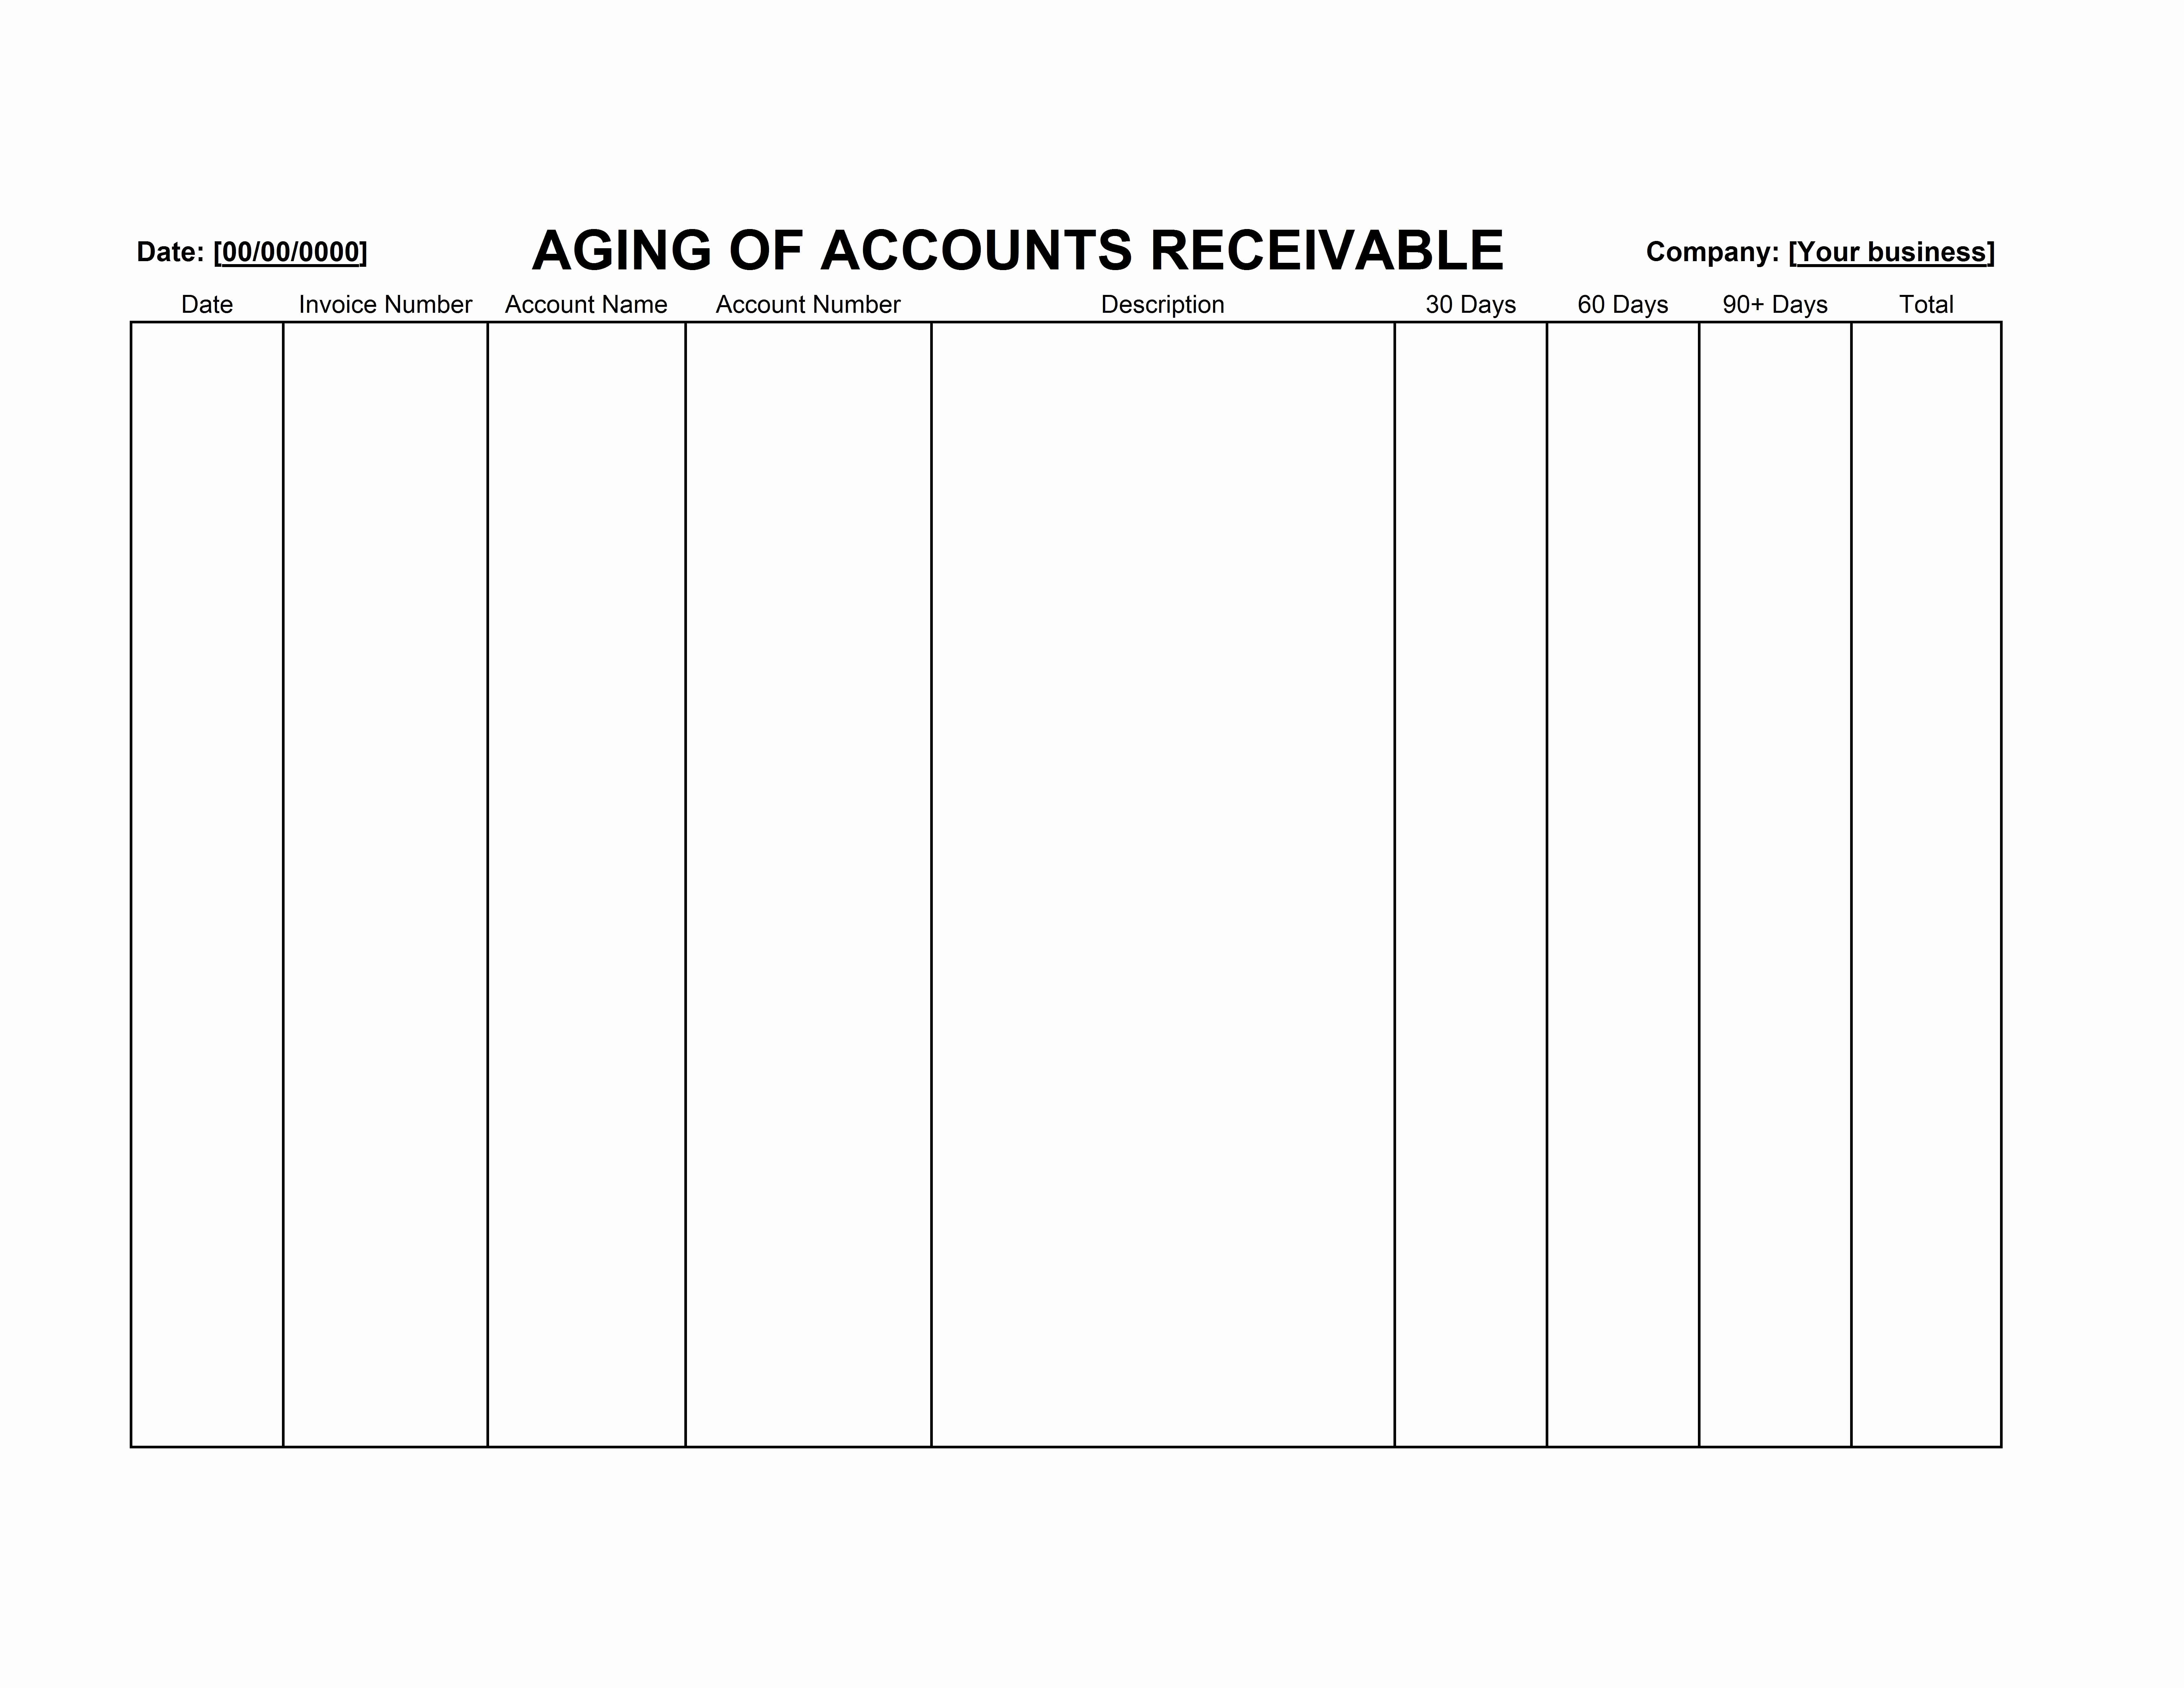 Accounts Receivable Excel Template Free Lovely Accounts Receivable Aging Template